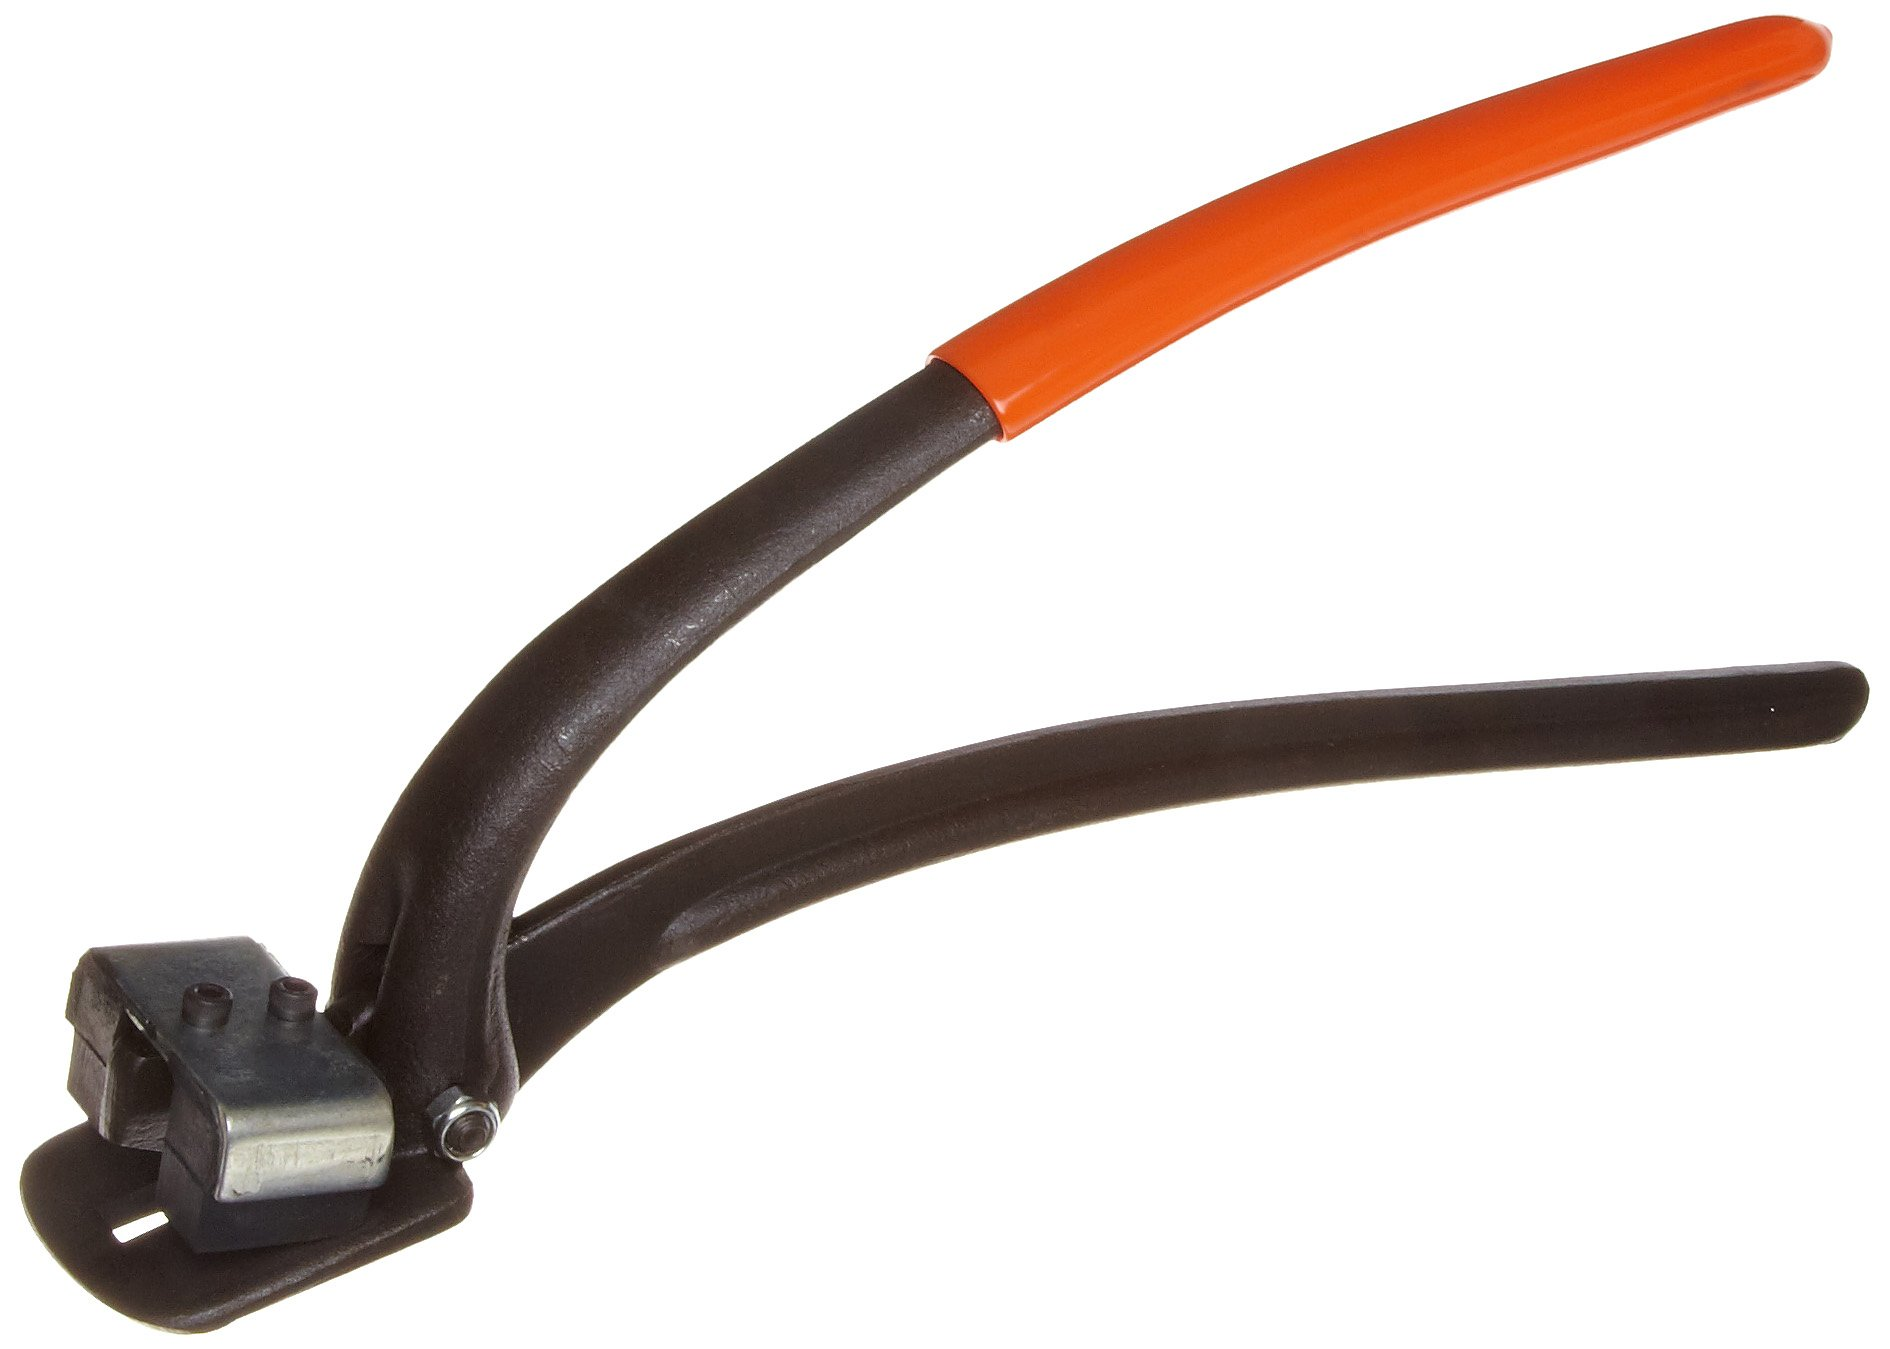 PAC Strapping SSC125 Strap Cutter for up to 1-1/4'' x 0.031'' Steel Strap by PAC Strapping Products